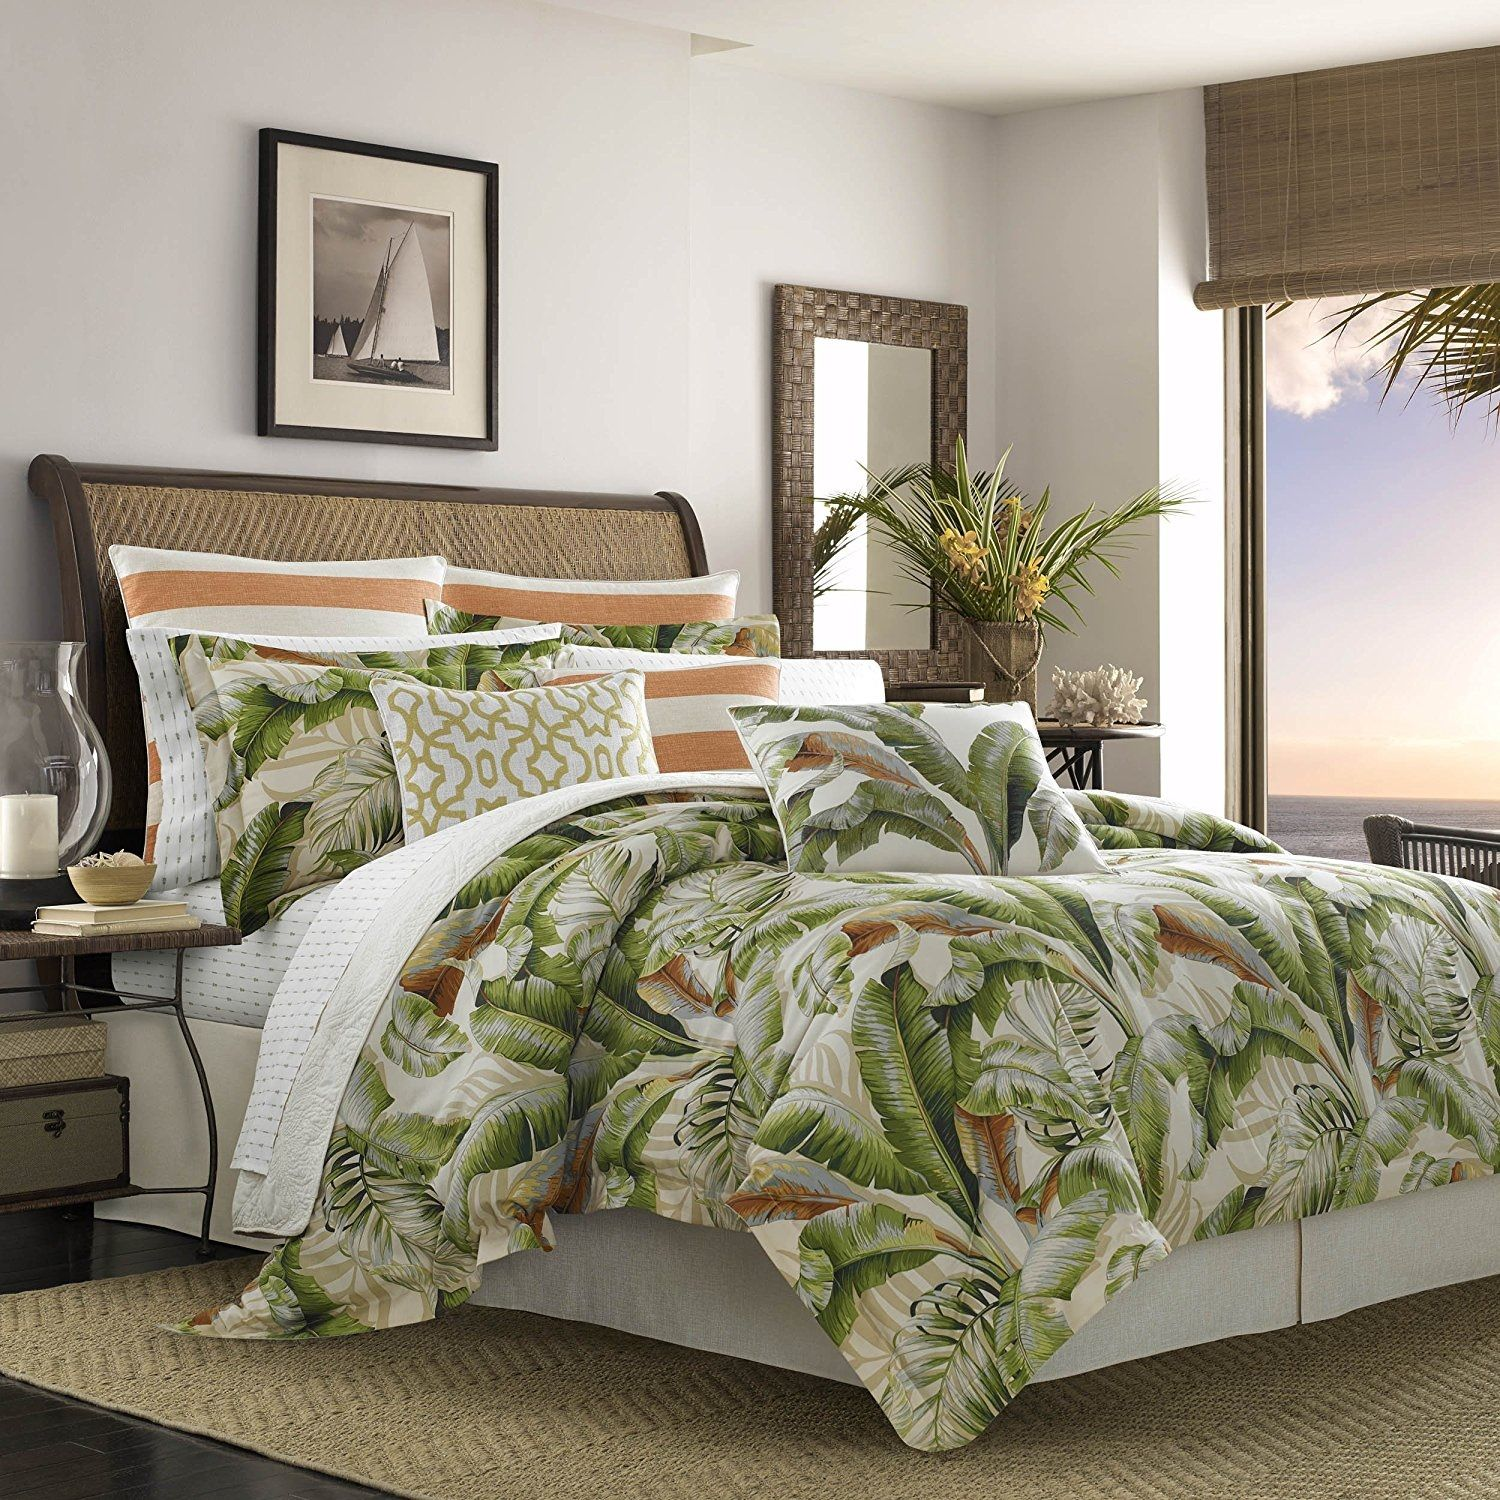 100 Tropical Bedding Sets And Tropical Comforters For 2020 Beachfront Decor Comforter Sets Tropical Bedding Sets King Duvet Cover Sets